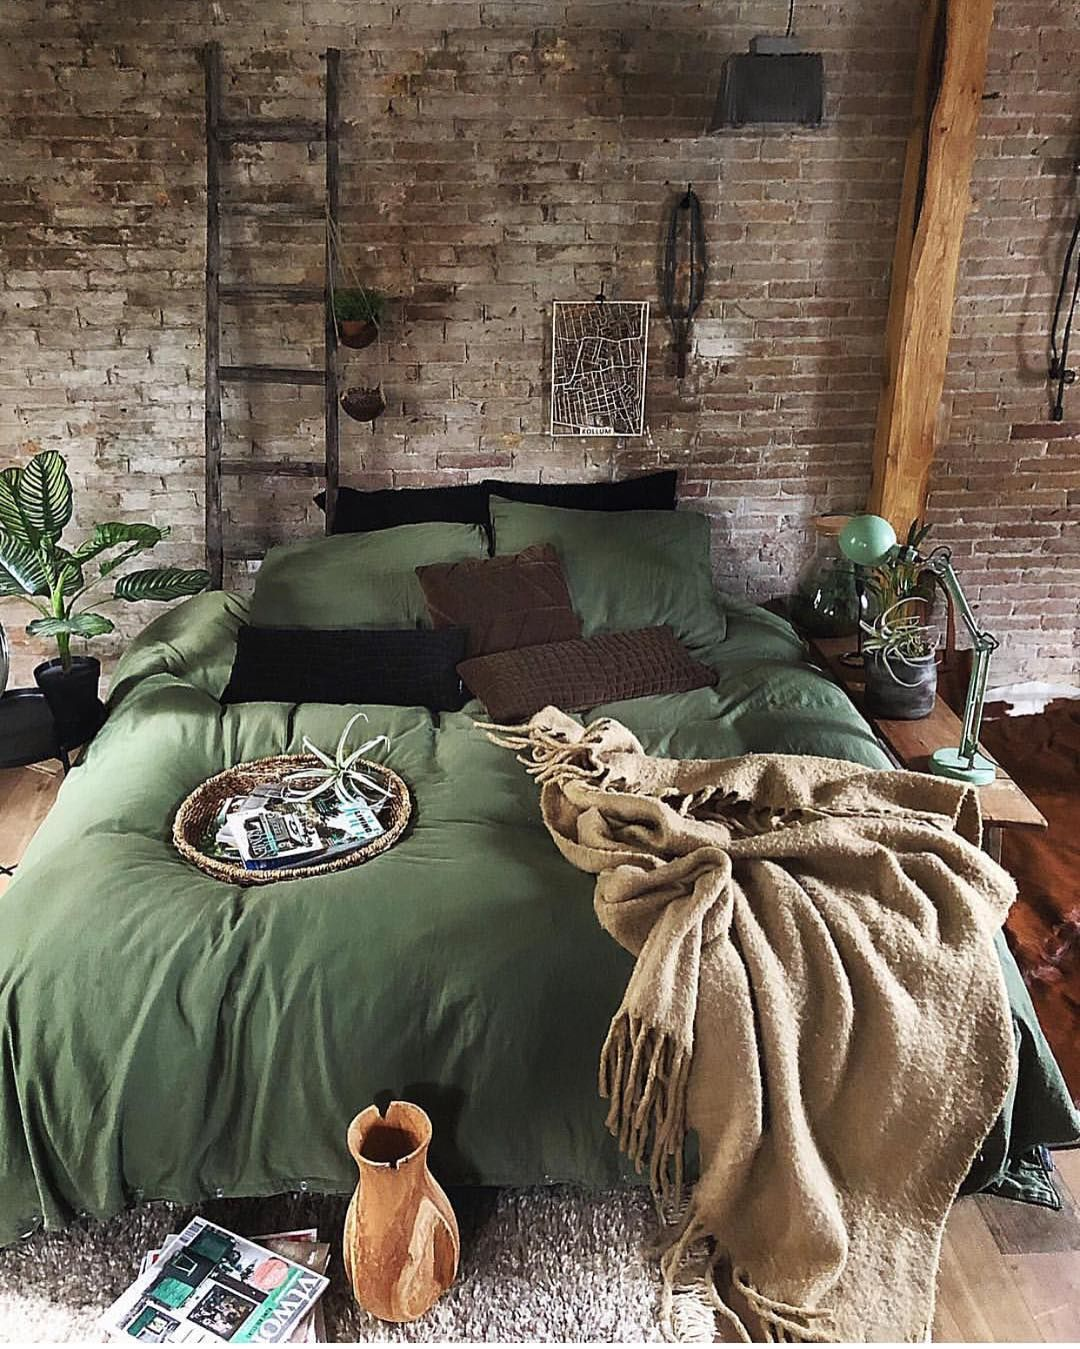 This Cosy Bedroom Is Looking Lush With Green Loveeee Helloplantlover Image By Jellinadetmar Bedroom Design Bedroom Decor House Interior